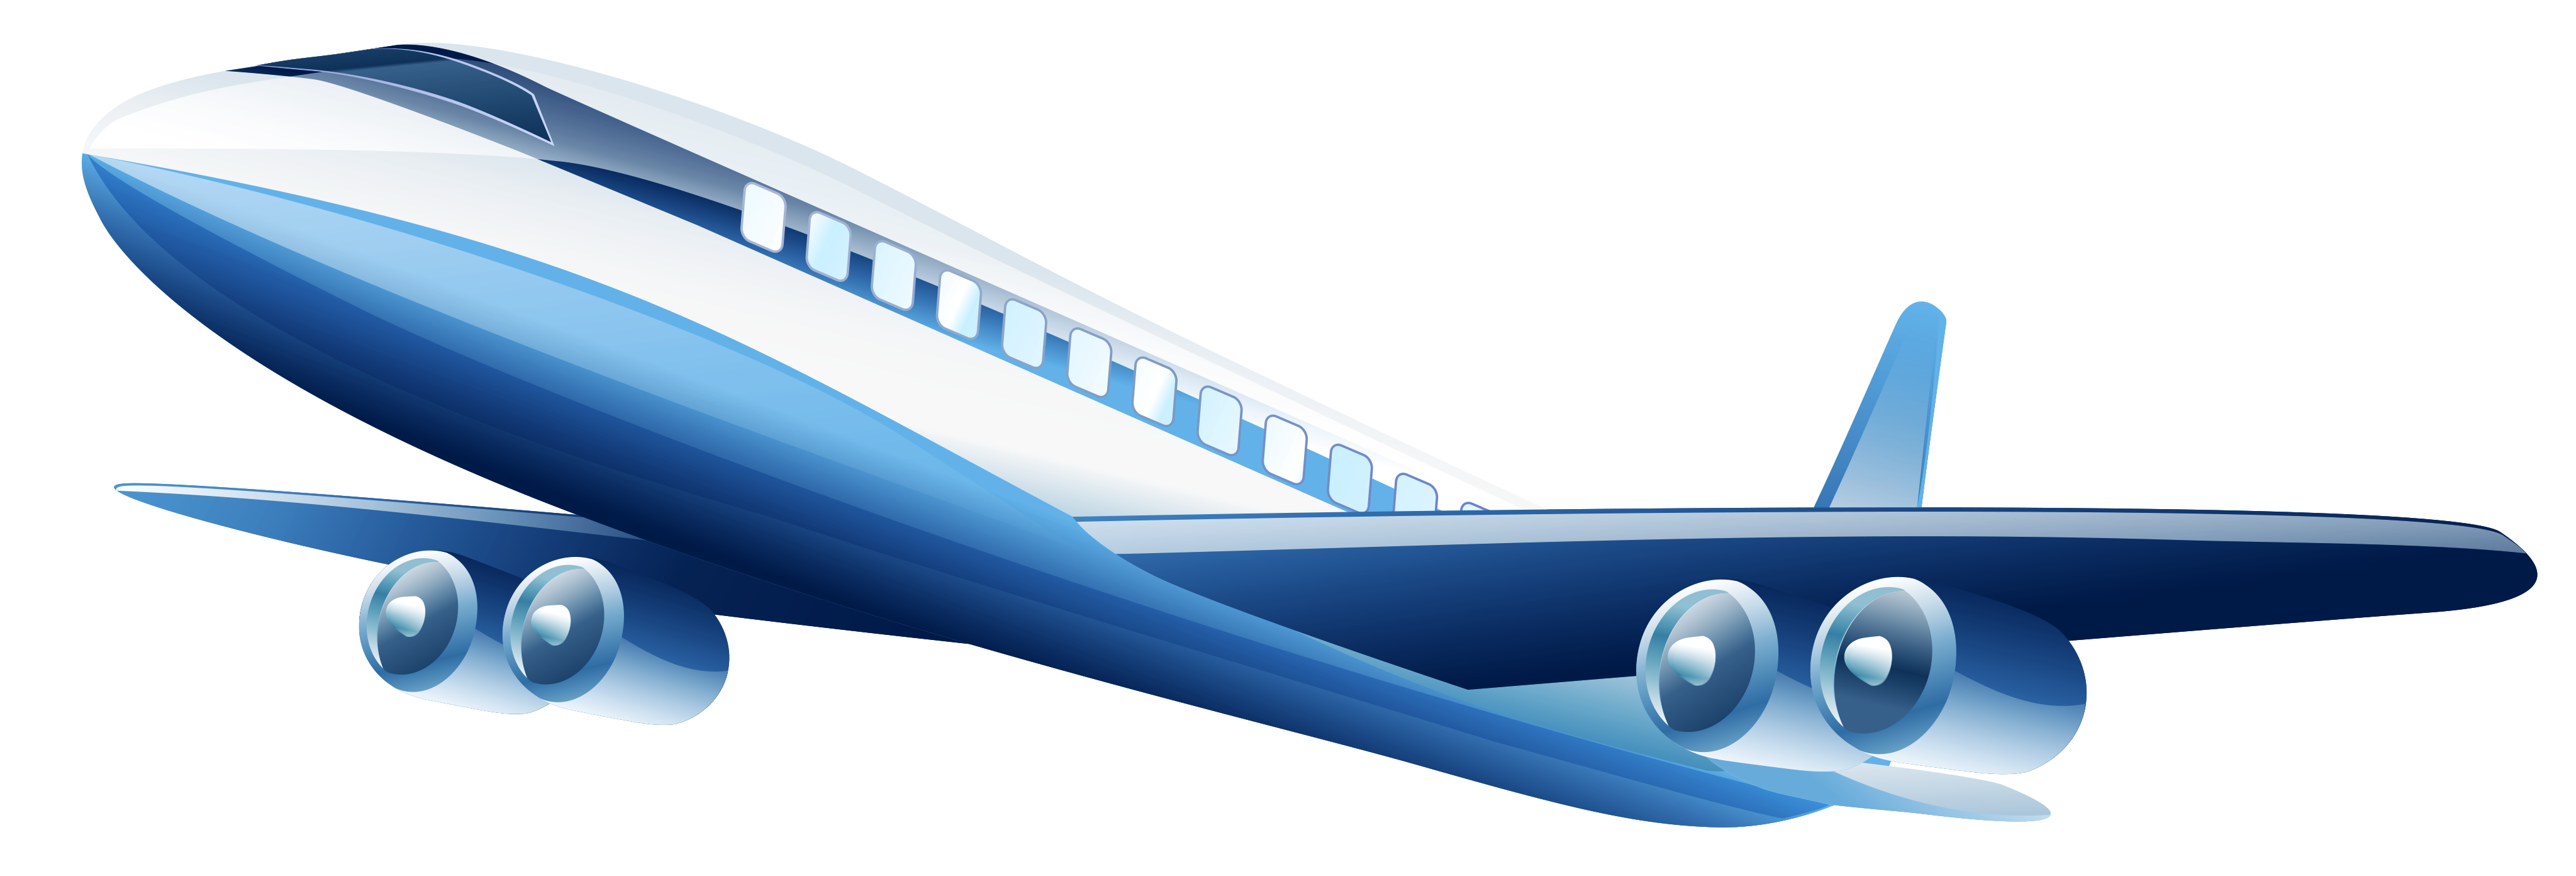 Airplane PNG Image - Plane PNG